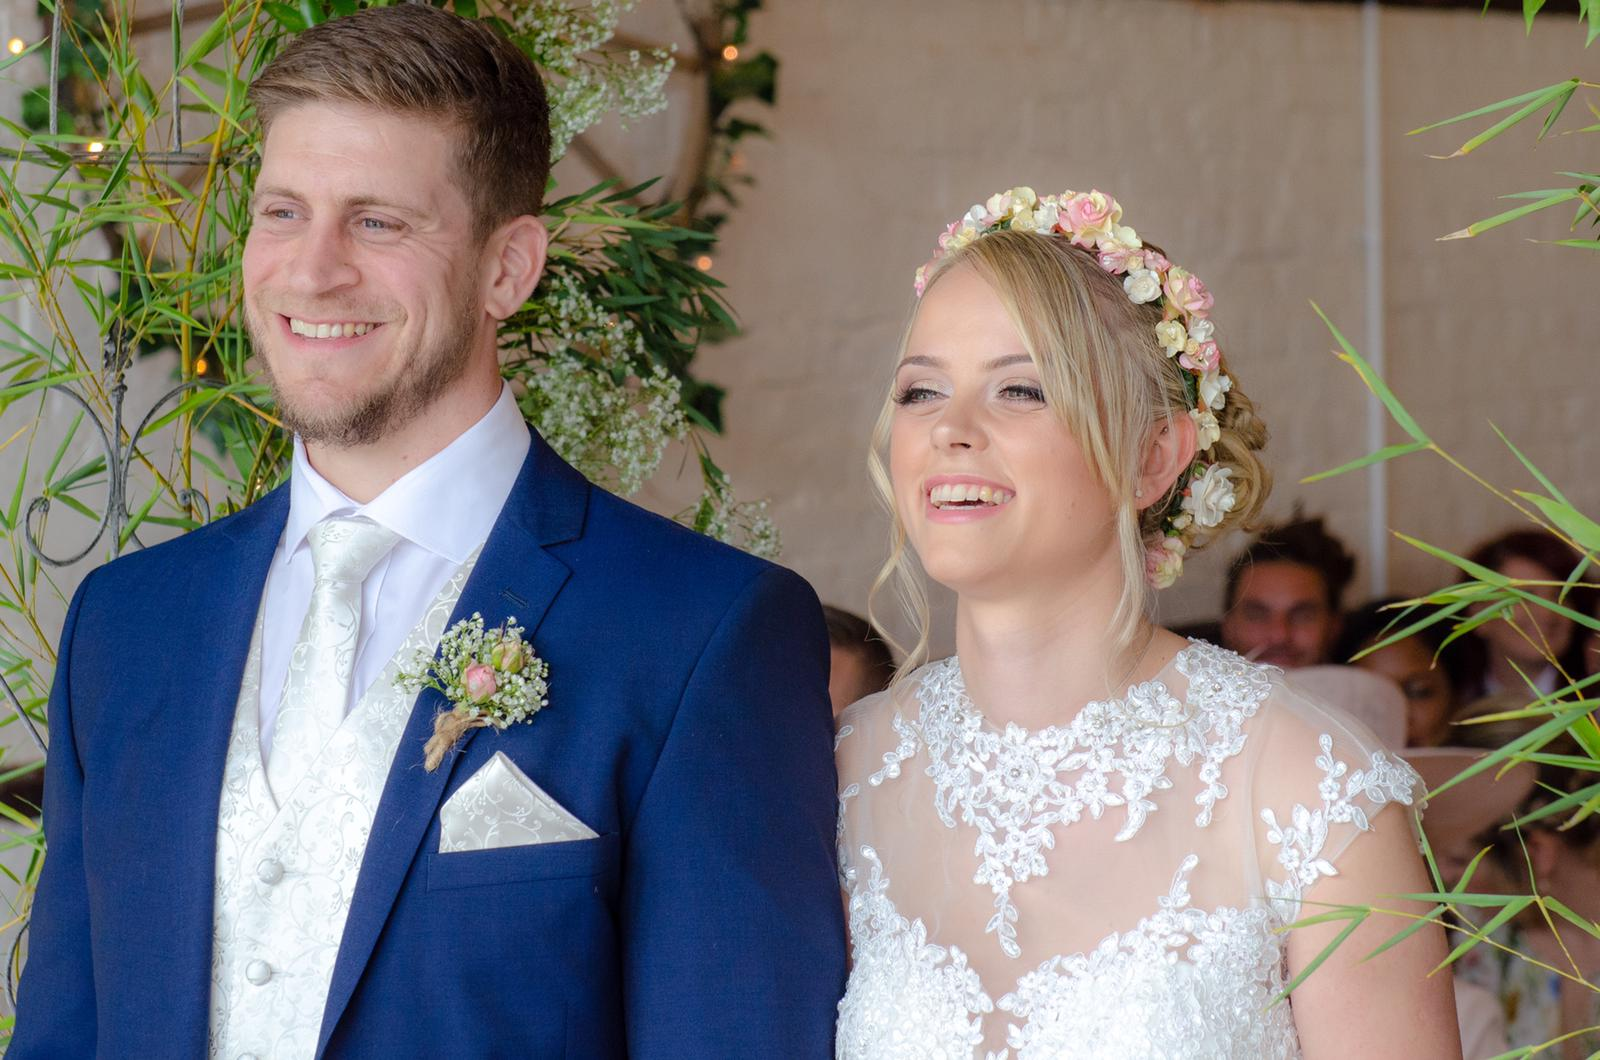 Beautiful bride and groom during nuptials